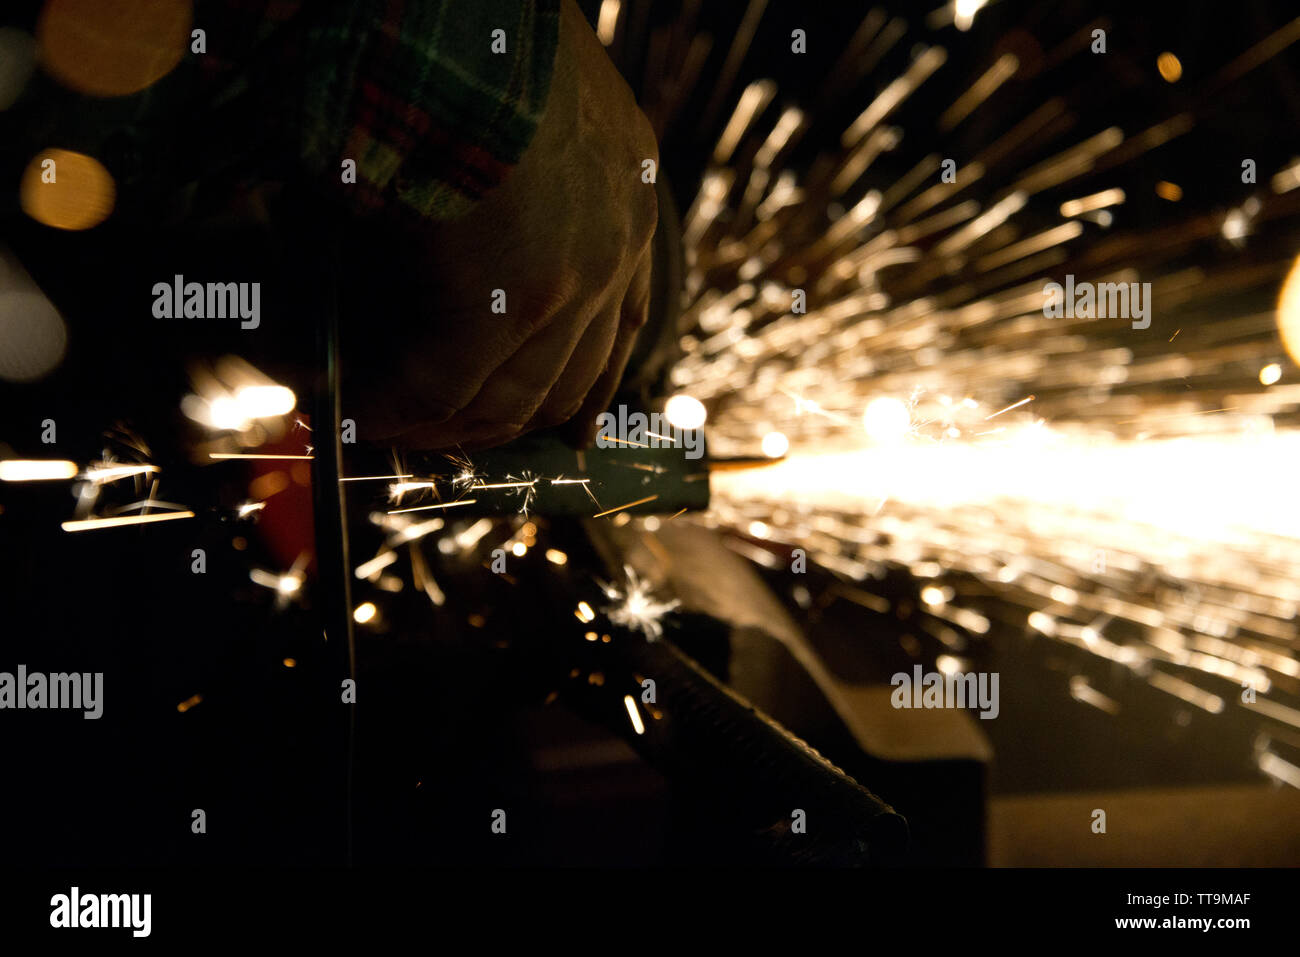 cutting metal with angle grinder, producing rows of sparks, in smithery in franconia, Germany - Stock Image